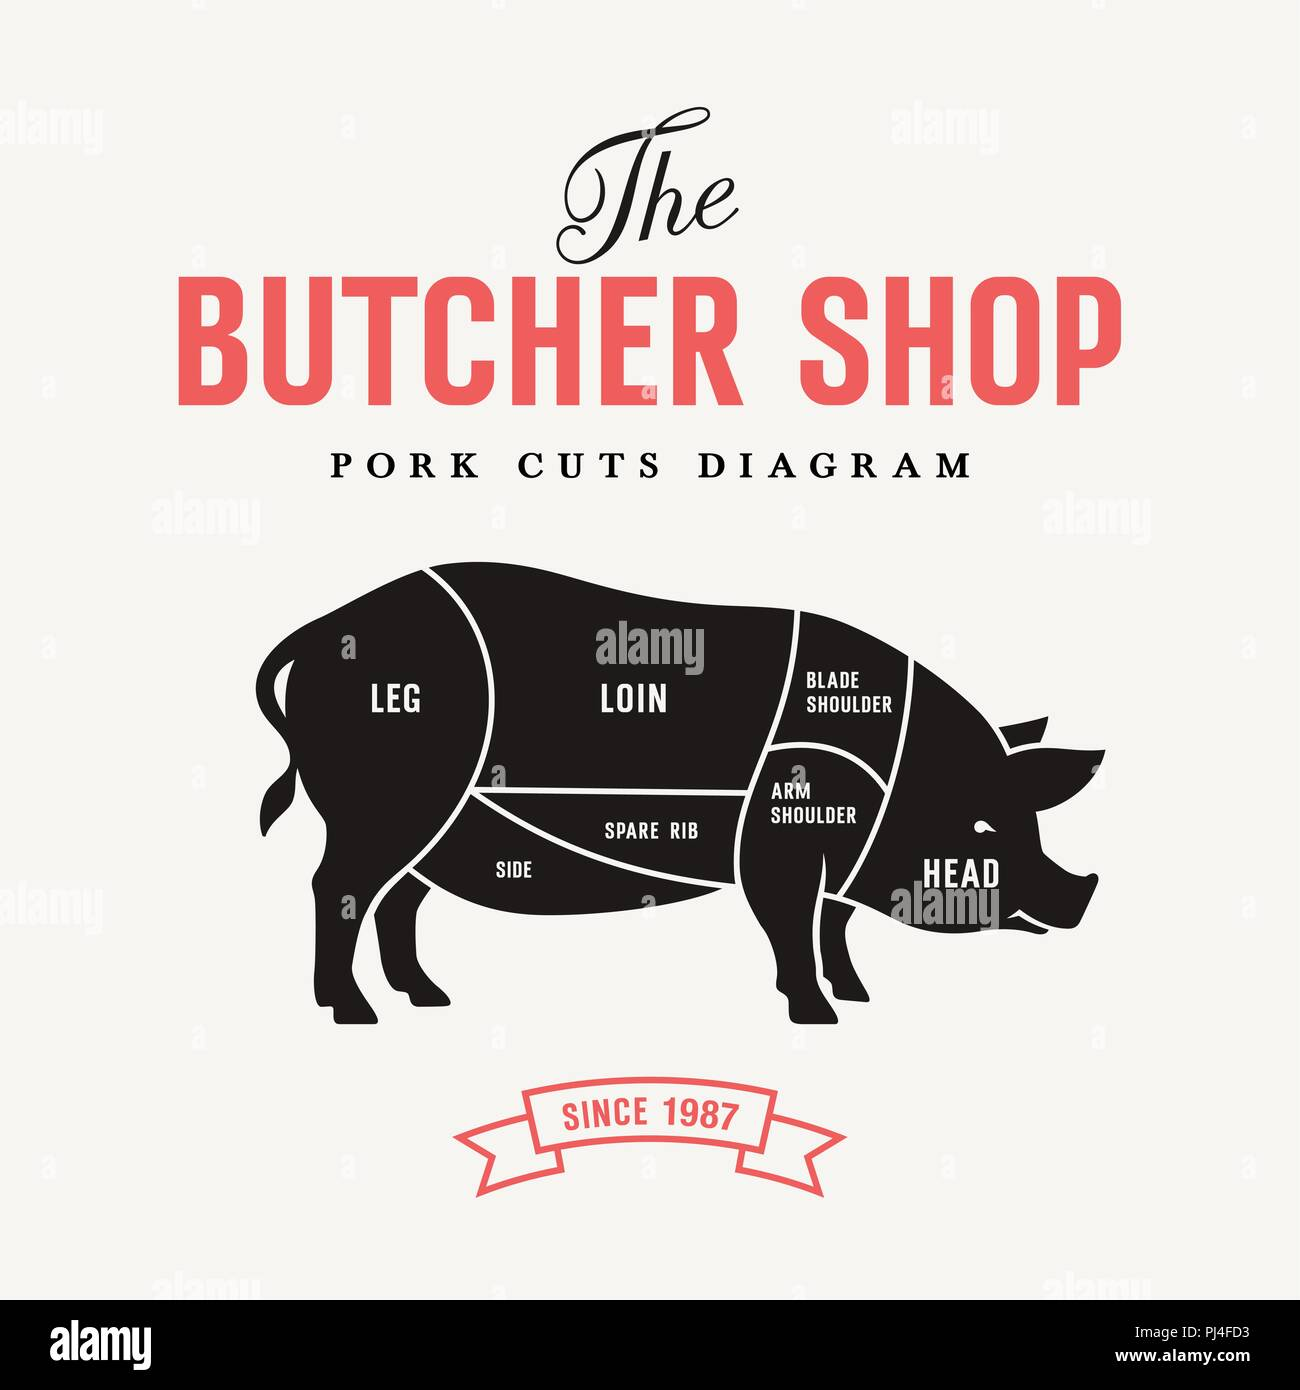 Pork cuts diagram, vector illustration for butcher shop and Farm Market - Stock Image